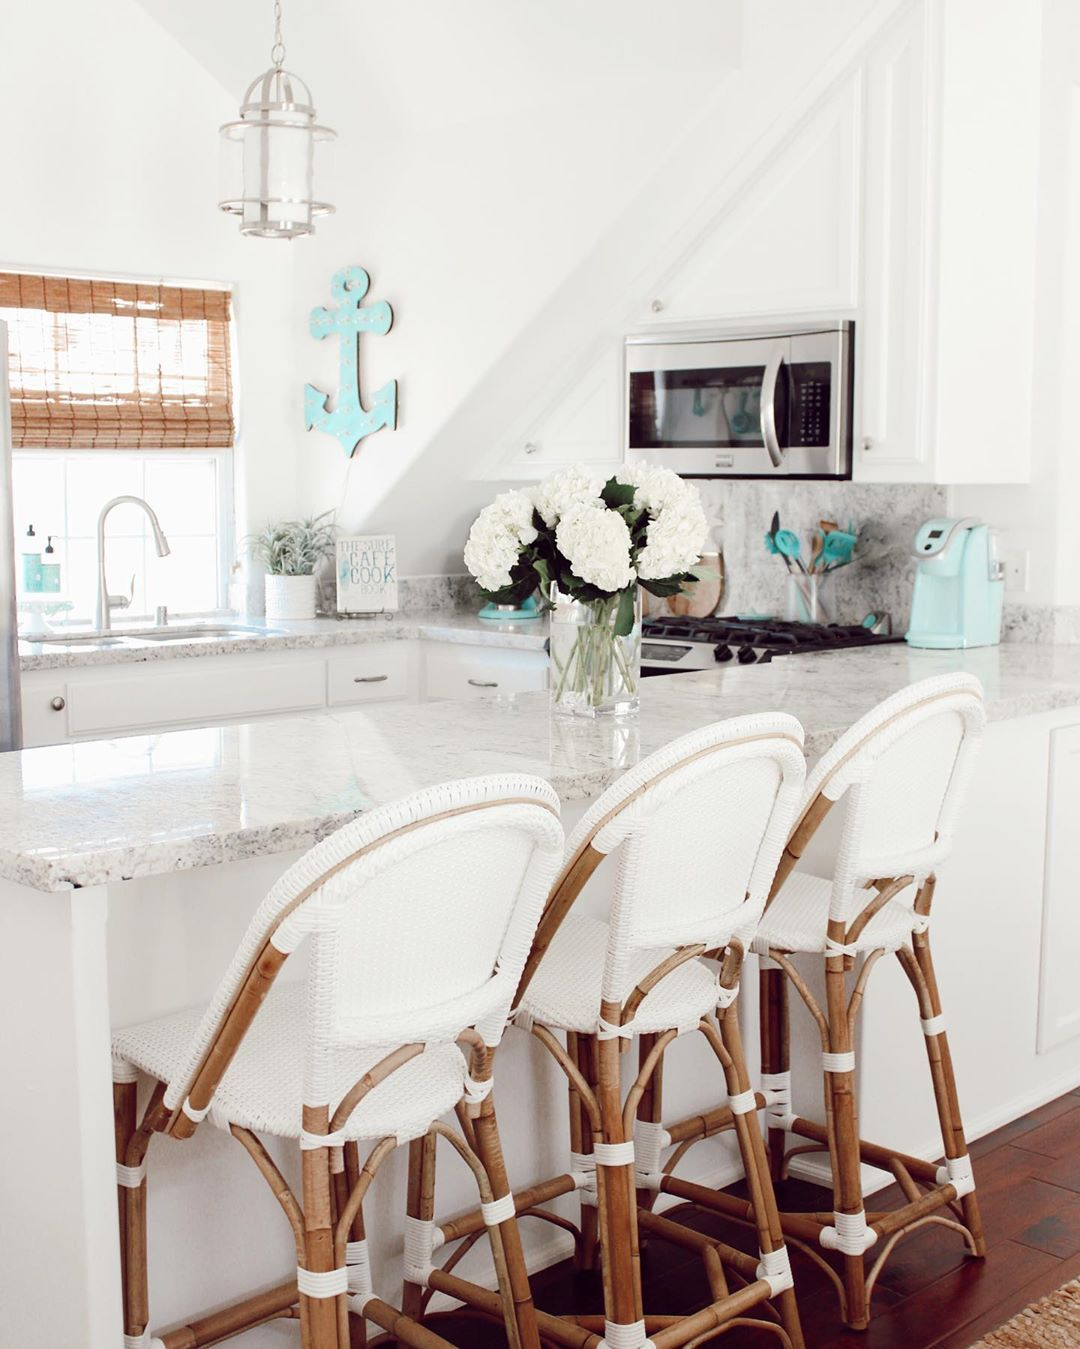 a neutral coastal kitchen with white cabinetry, a grey stone countertop, woven shades, a light blue anchor and rattan chairs